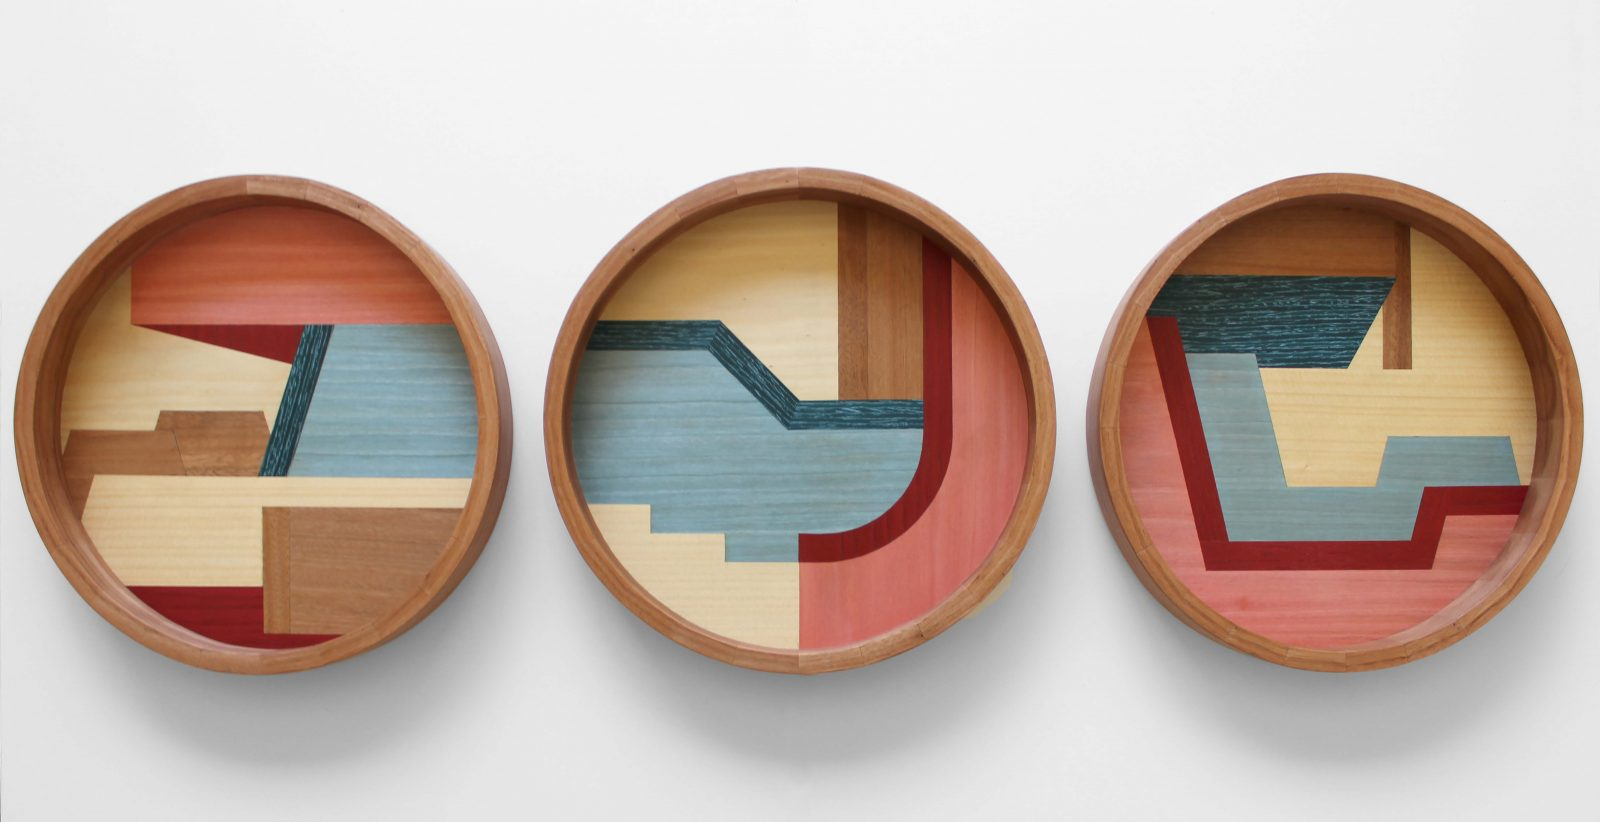 Chelsea Lemon - Taglietti Trays - Blackbutt & Dyed Veneers. Photo: courtesy of the artist